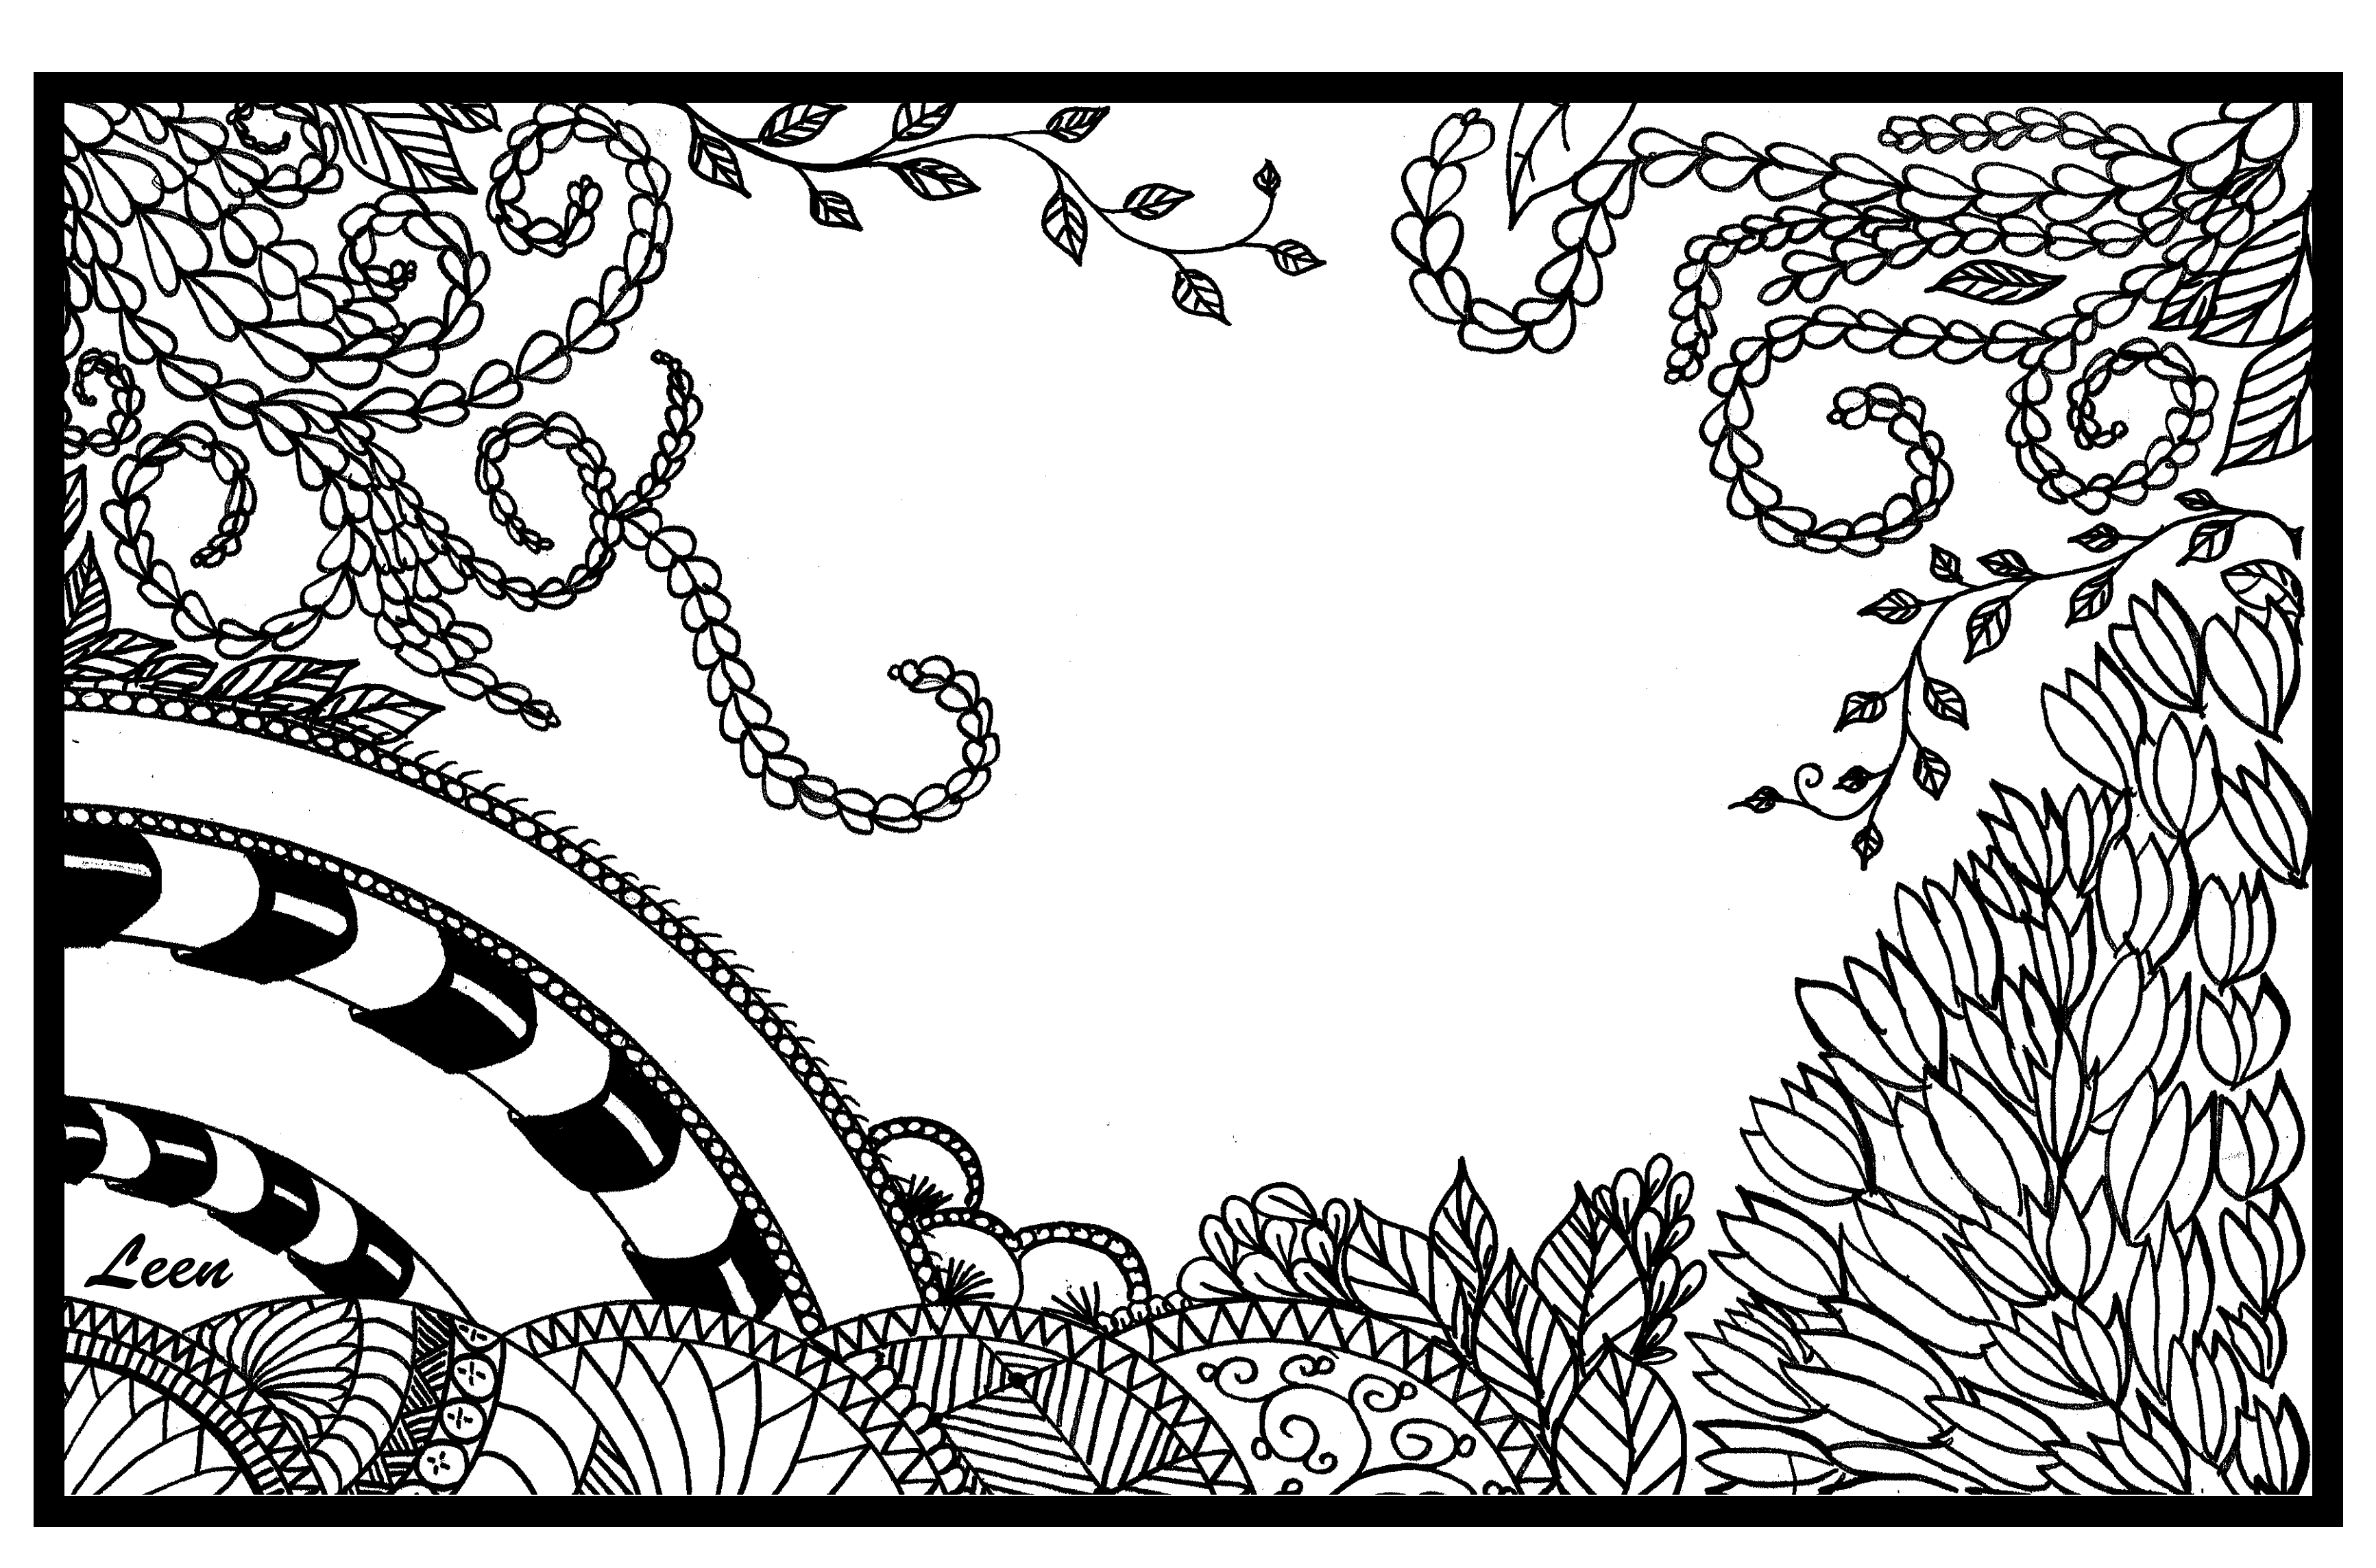 Coloring 'The jungle'